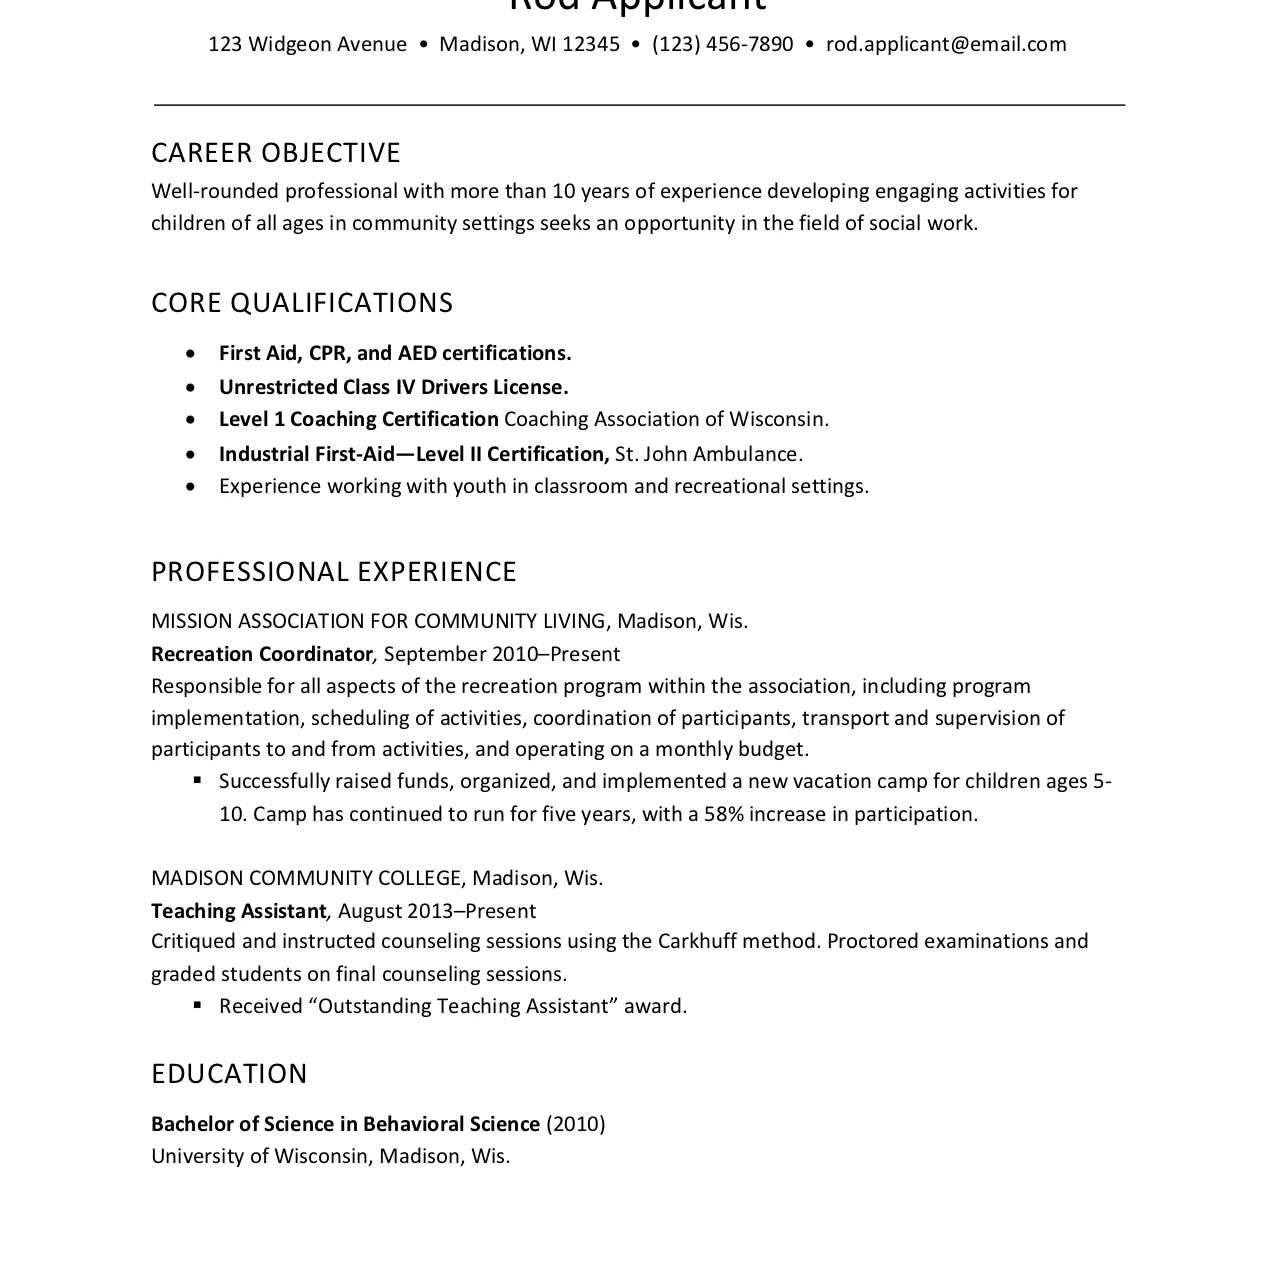 Resume Example For Childcare Social Services Worker